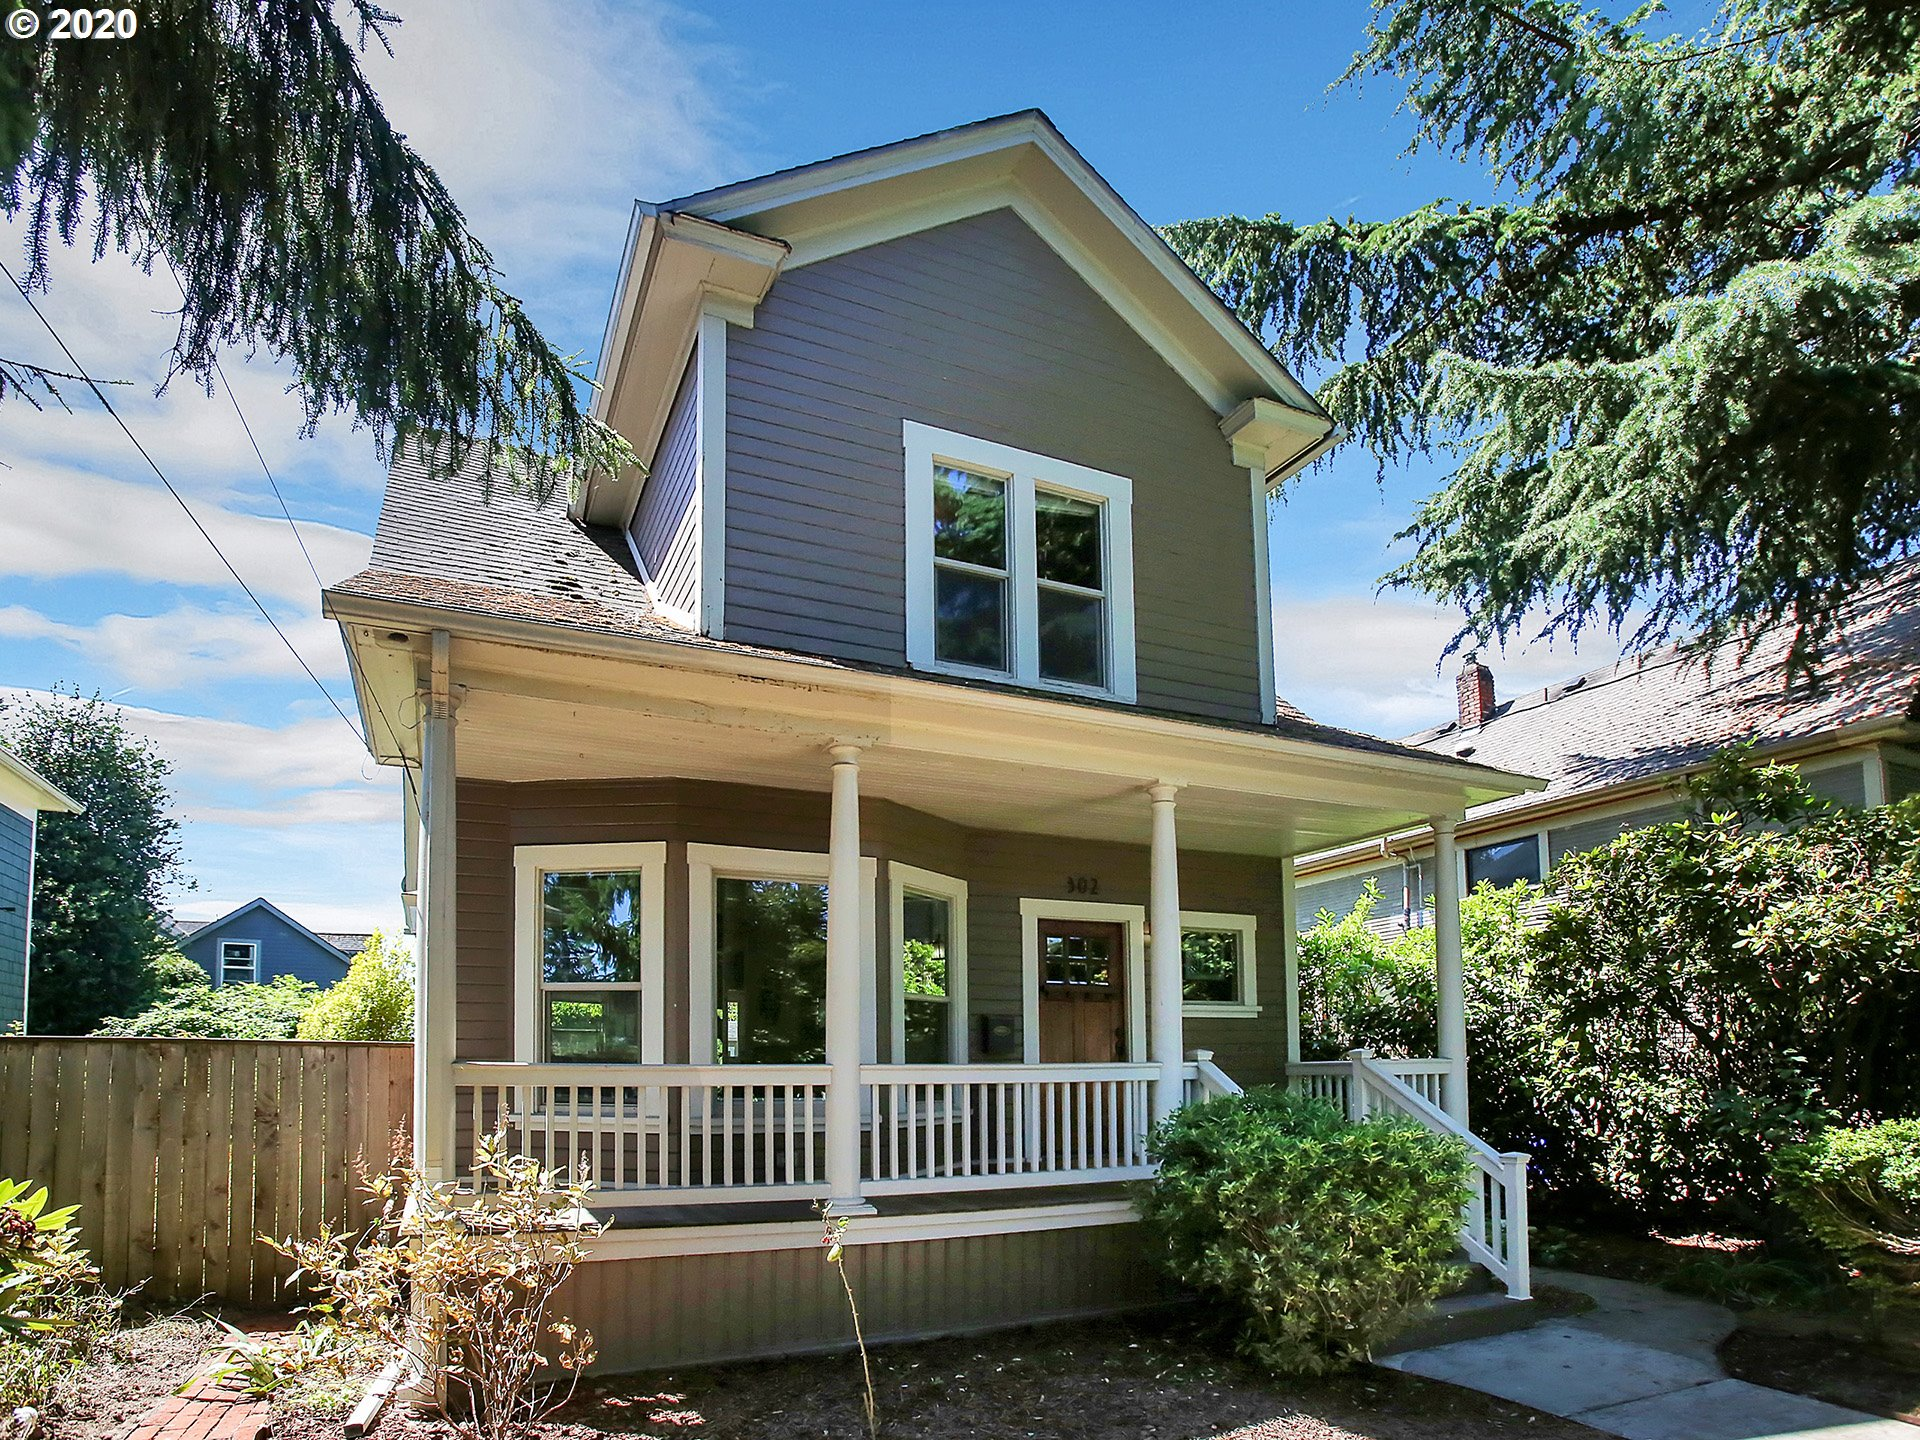 Live next to everything Williams District and Mississippi has to offer! This classic Portland home has been lovingly restored from top to bottom with high-end finishes that do not disappoint. It features an amazing oversized yard and a finished basement with a separate entrance that is perfect for an ADU or Airbnb. House sits high off of Fremont and even has a garage! [Home Energy Score = 7. HES Report at https://rpt.greenbuildingregistry.com/hes/OR10185274]